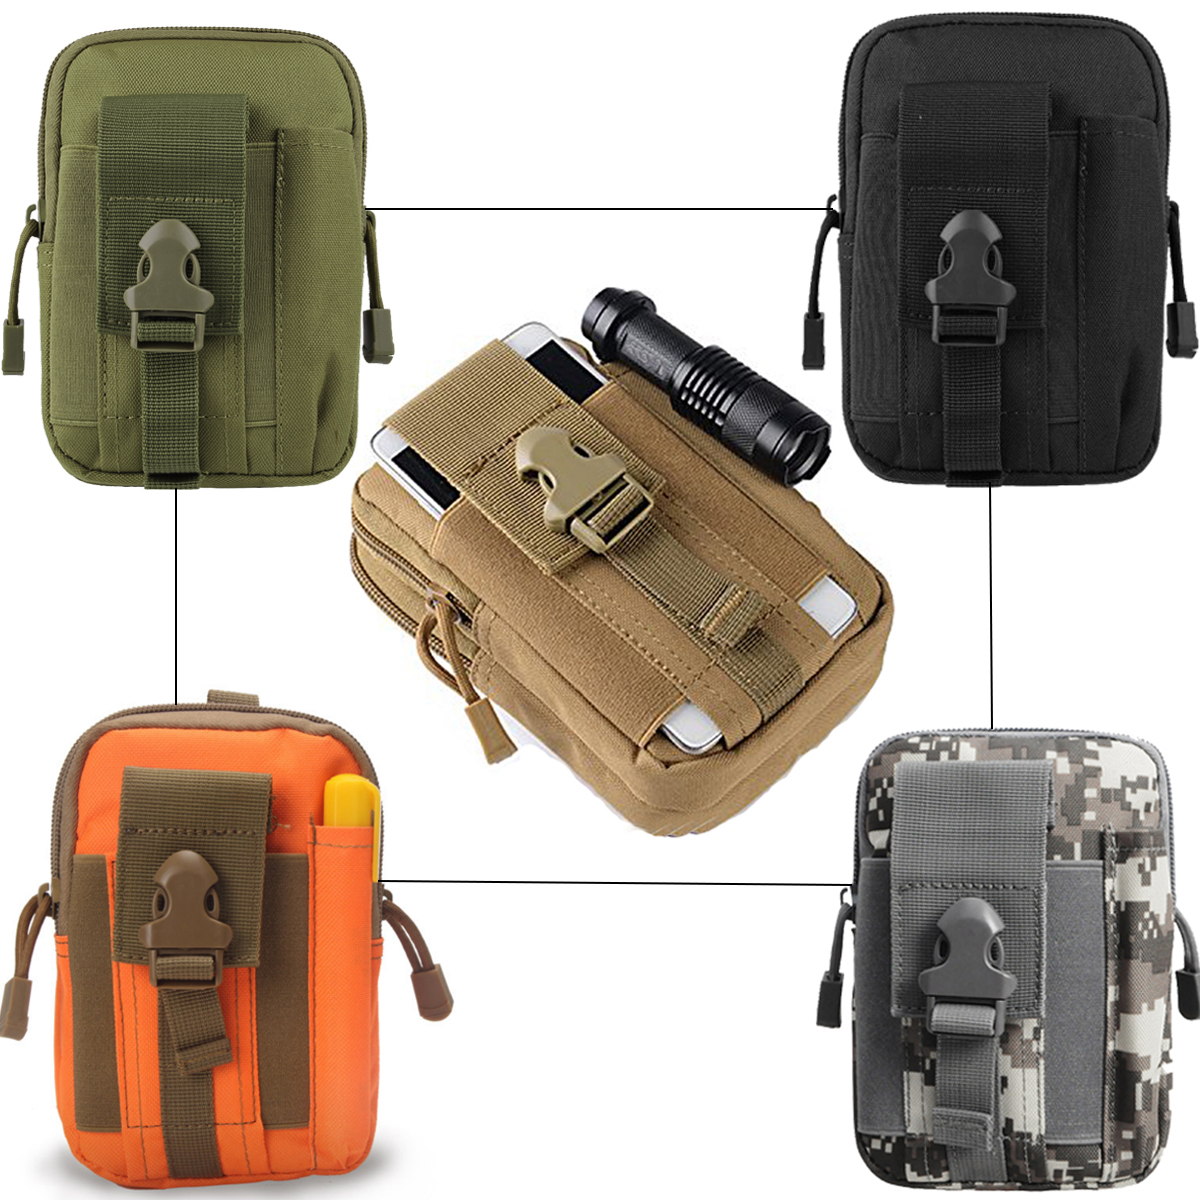 Tactical Molle Pockets Pouch Waist Belt Wallet Universal Holster Military Pack Outdoor Camping Climbing Purse Hunting Phone Bag image